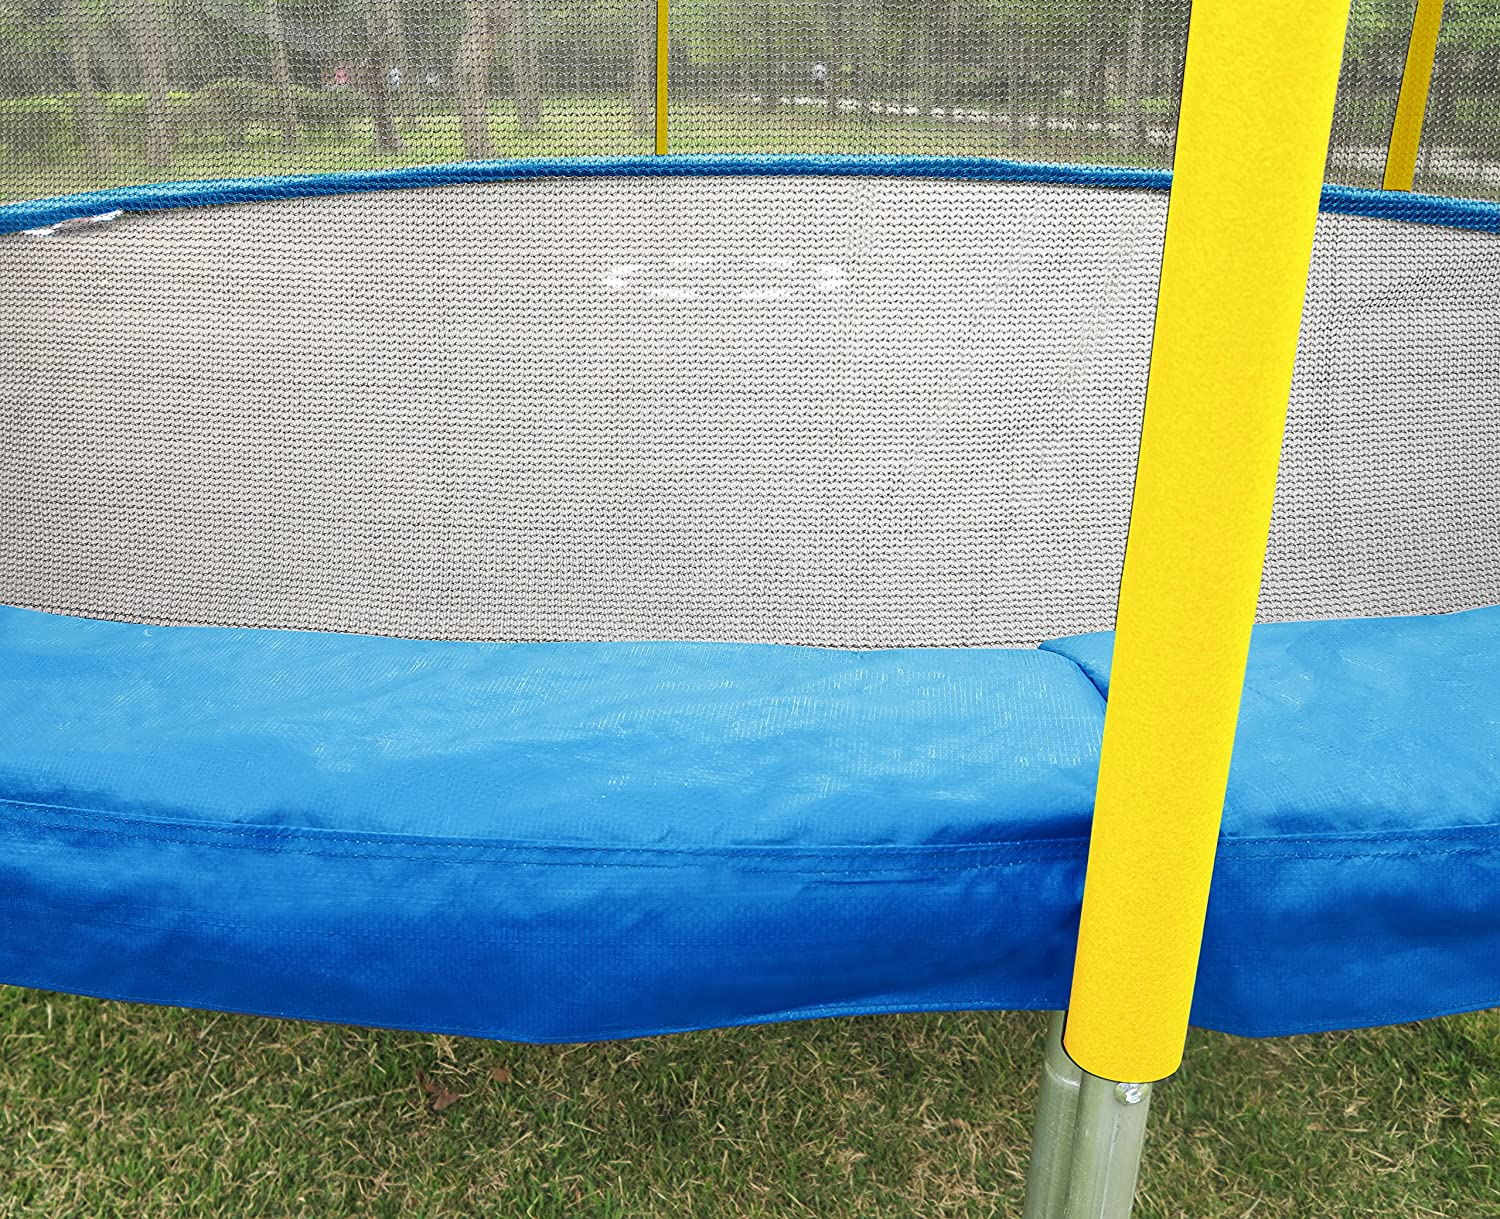 This is an image of Sportspower 12ft Trampoline & Enclosure.